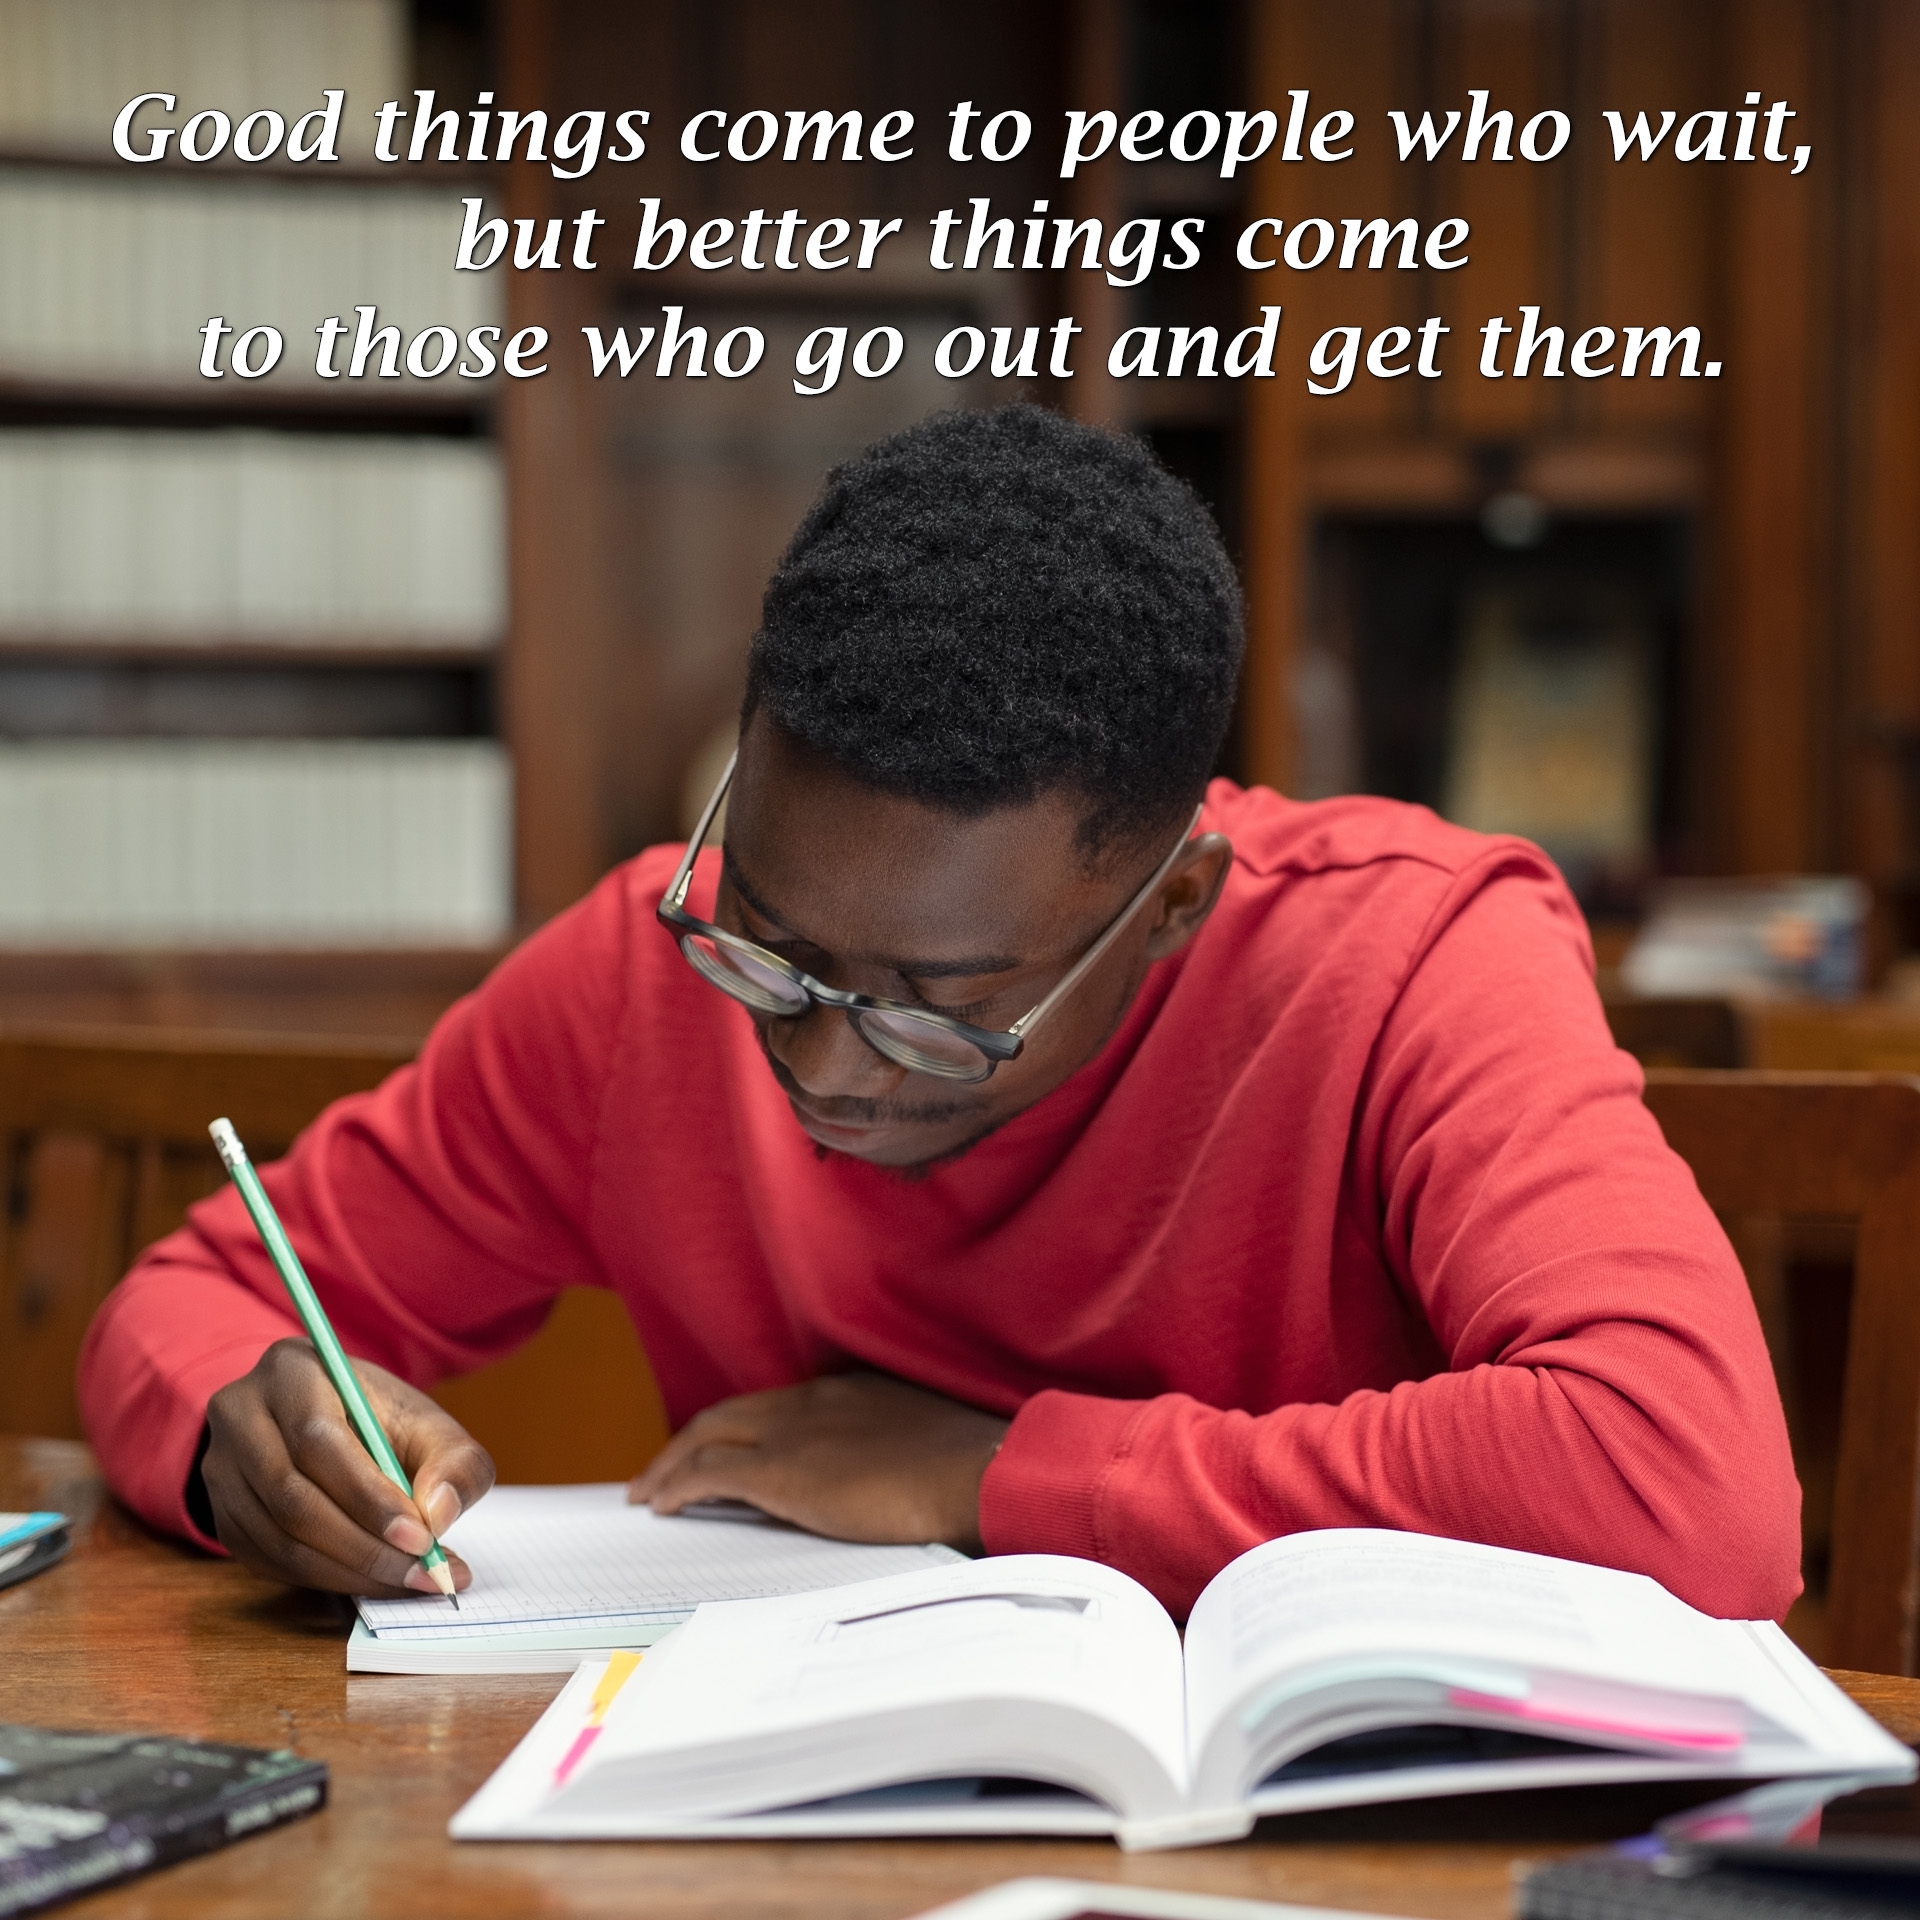 Good things come to people who wait, but better things come to those who go out and get them.